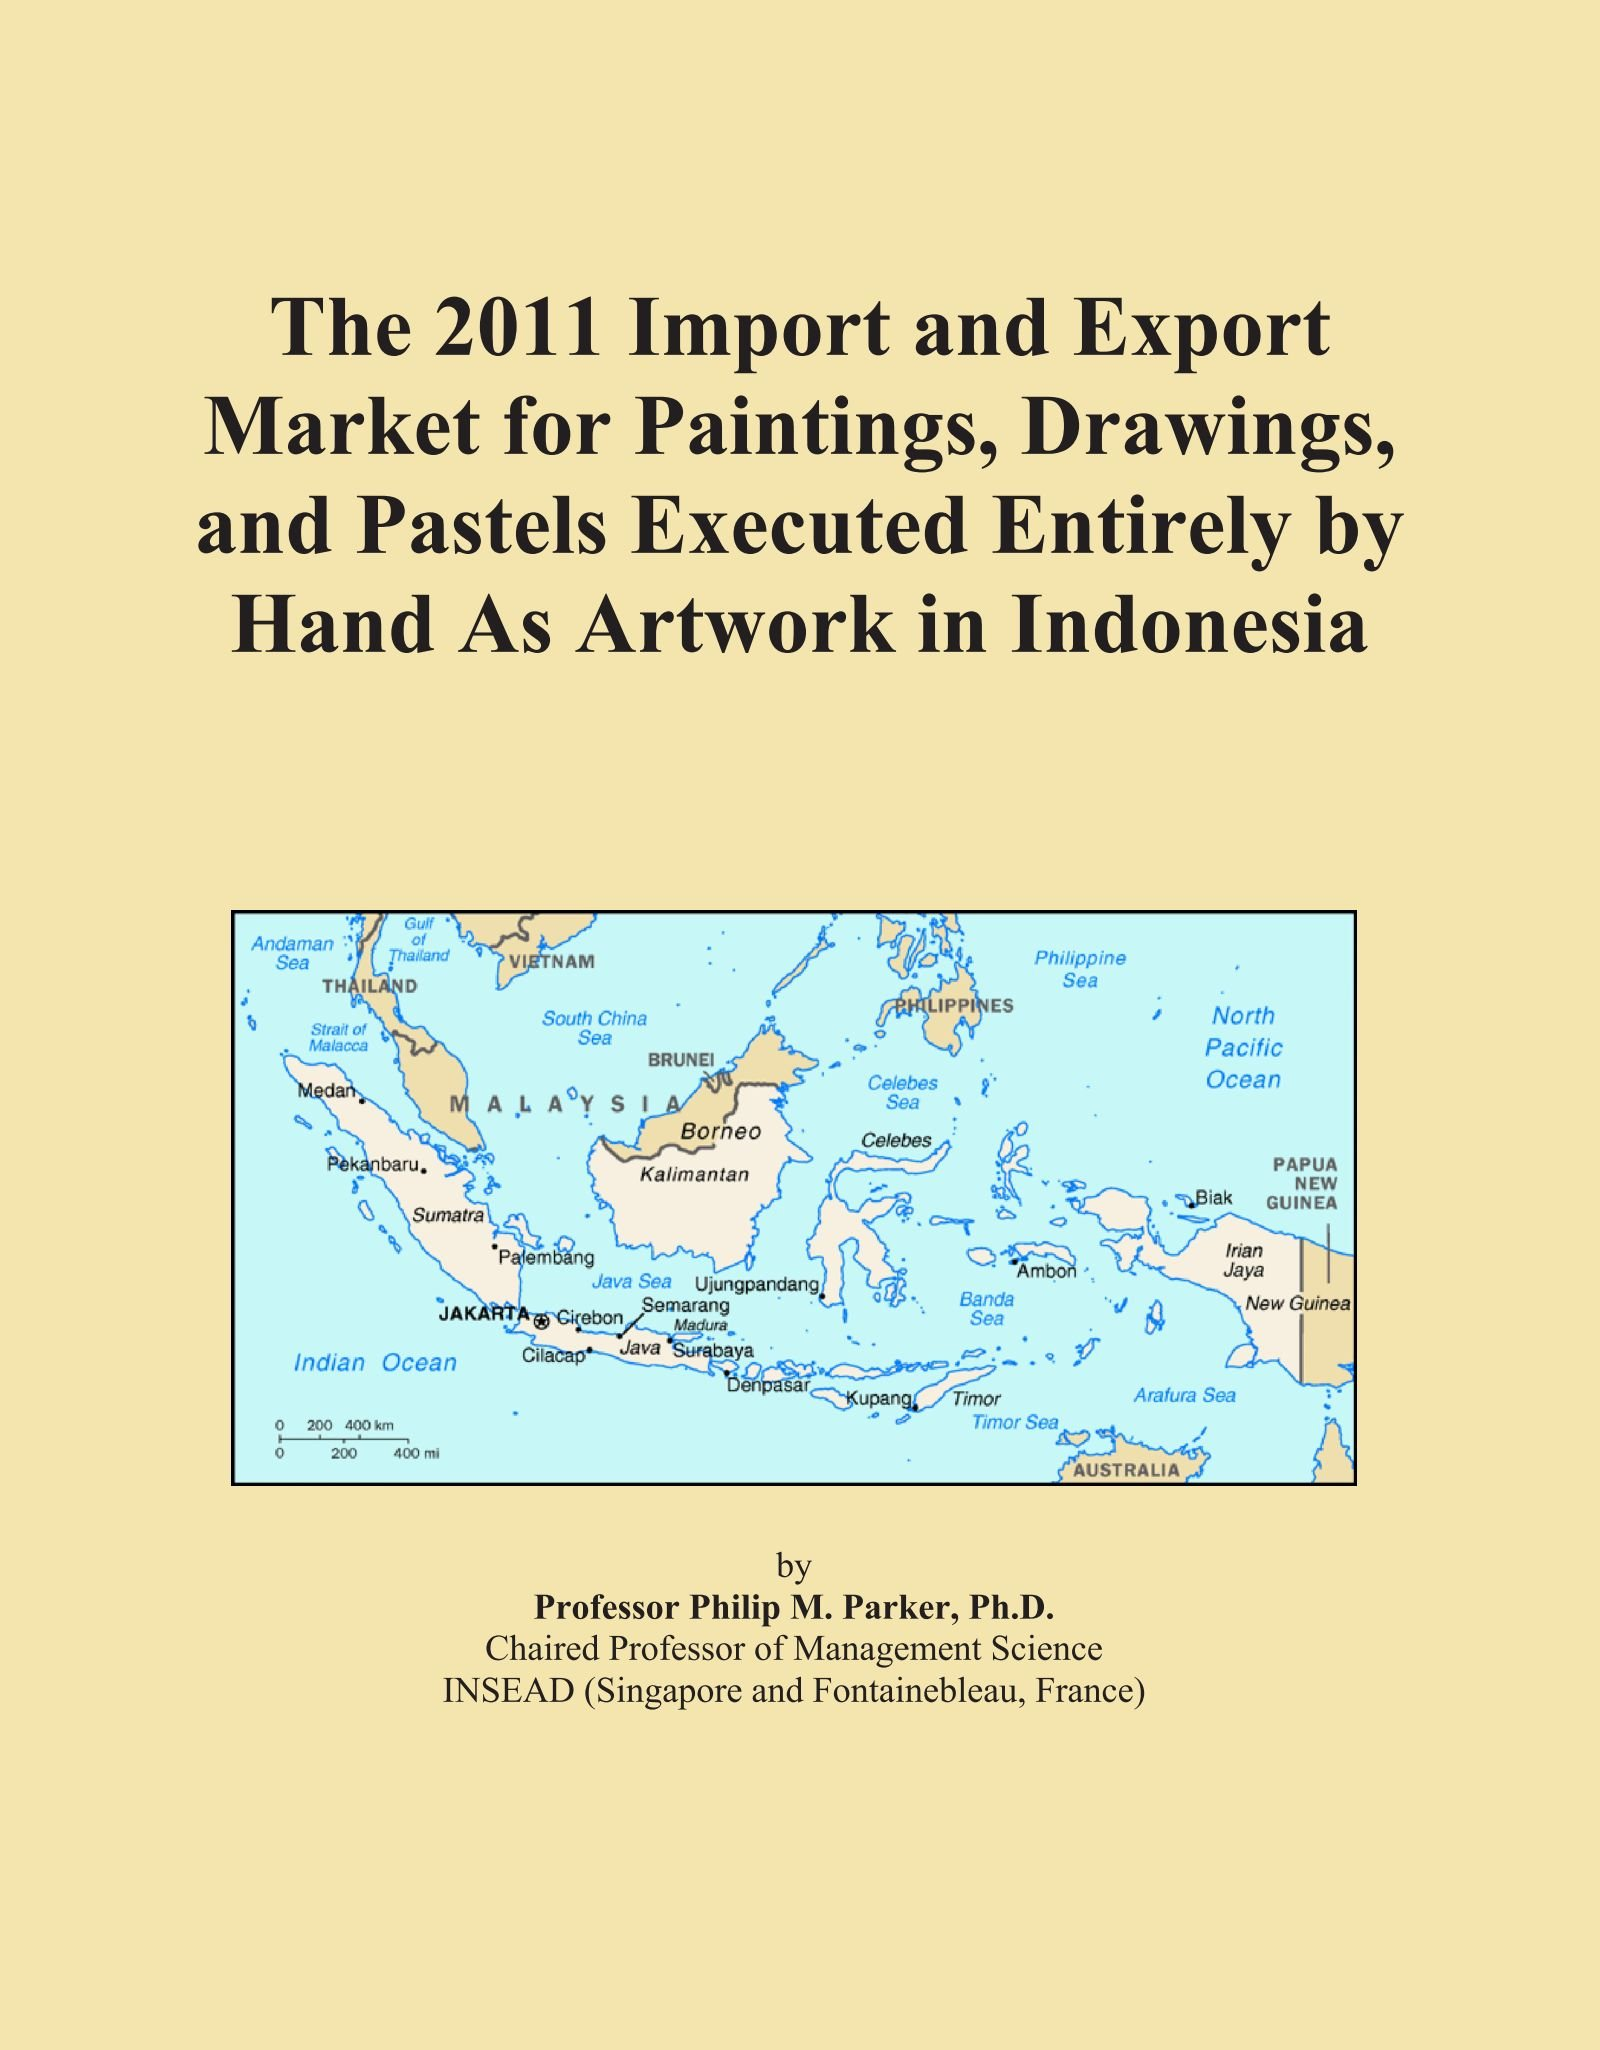 The 2011 Import and Export Market for Paintings, Drawings, and Pastels Executed Entirely by Hand As Artwork in Indonesia pdf